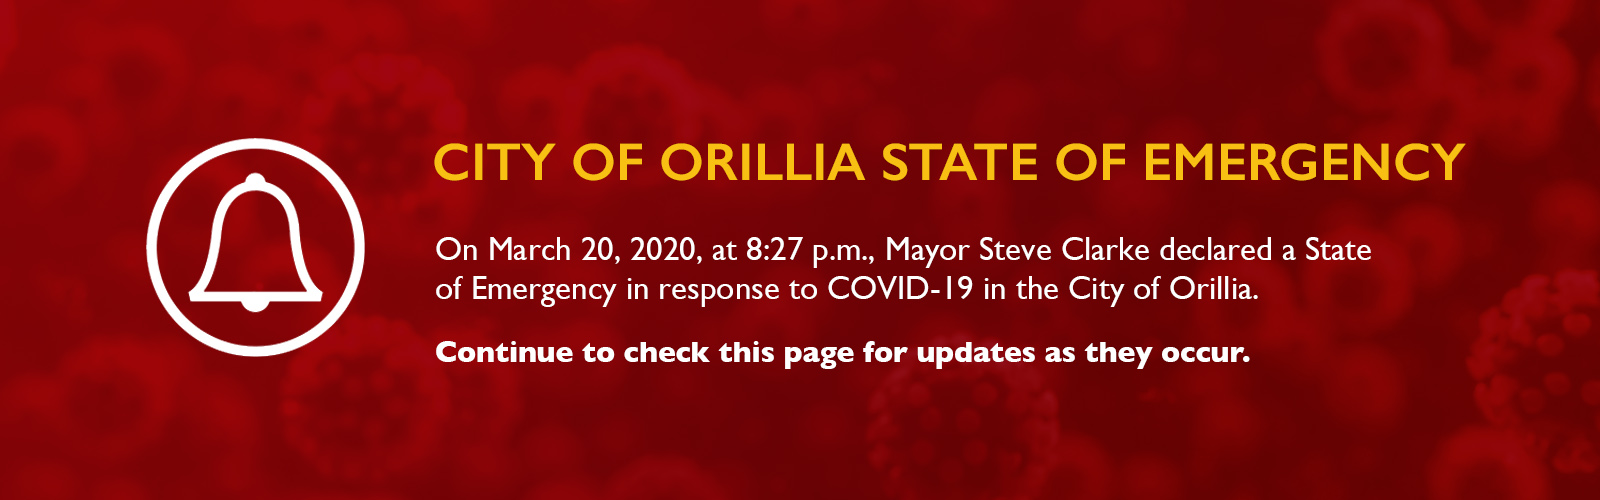 City of Orillia State of Emergency